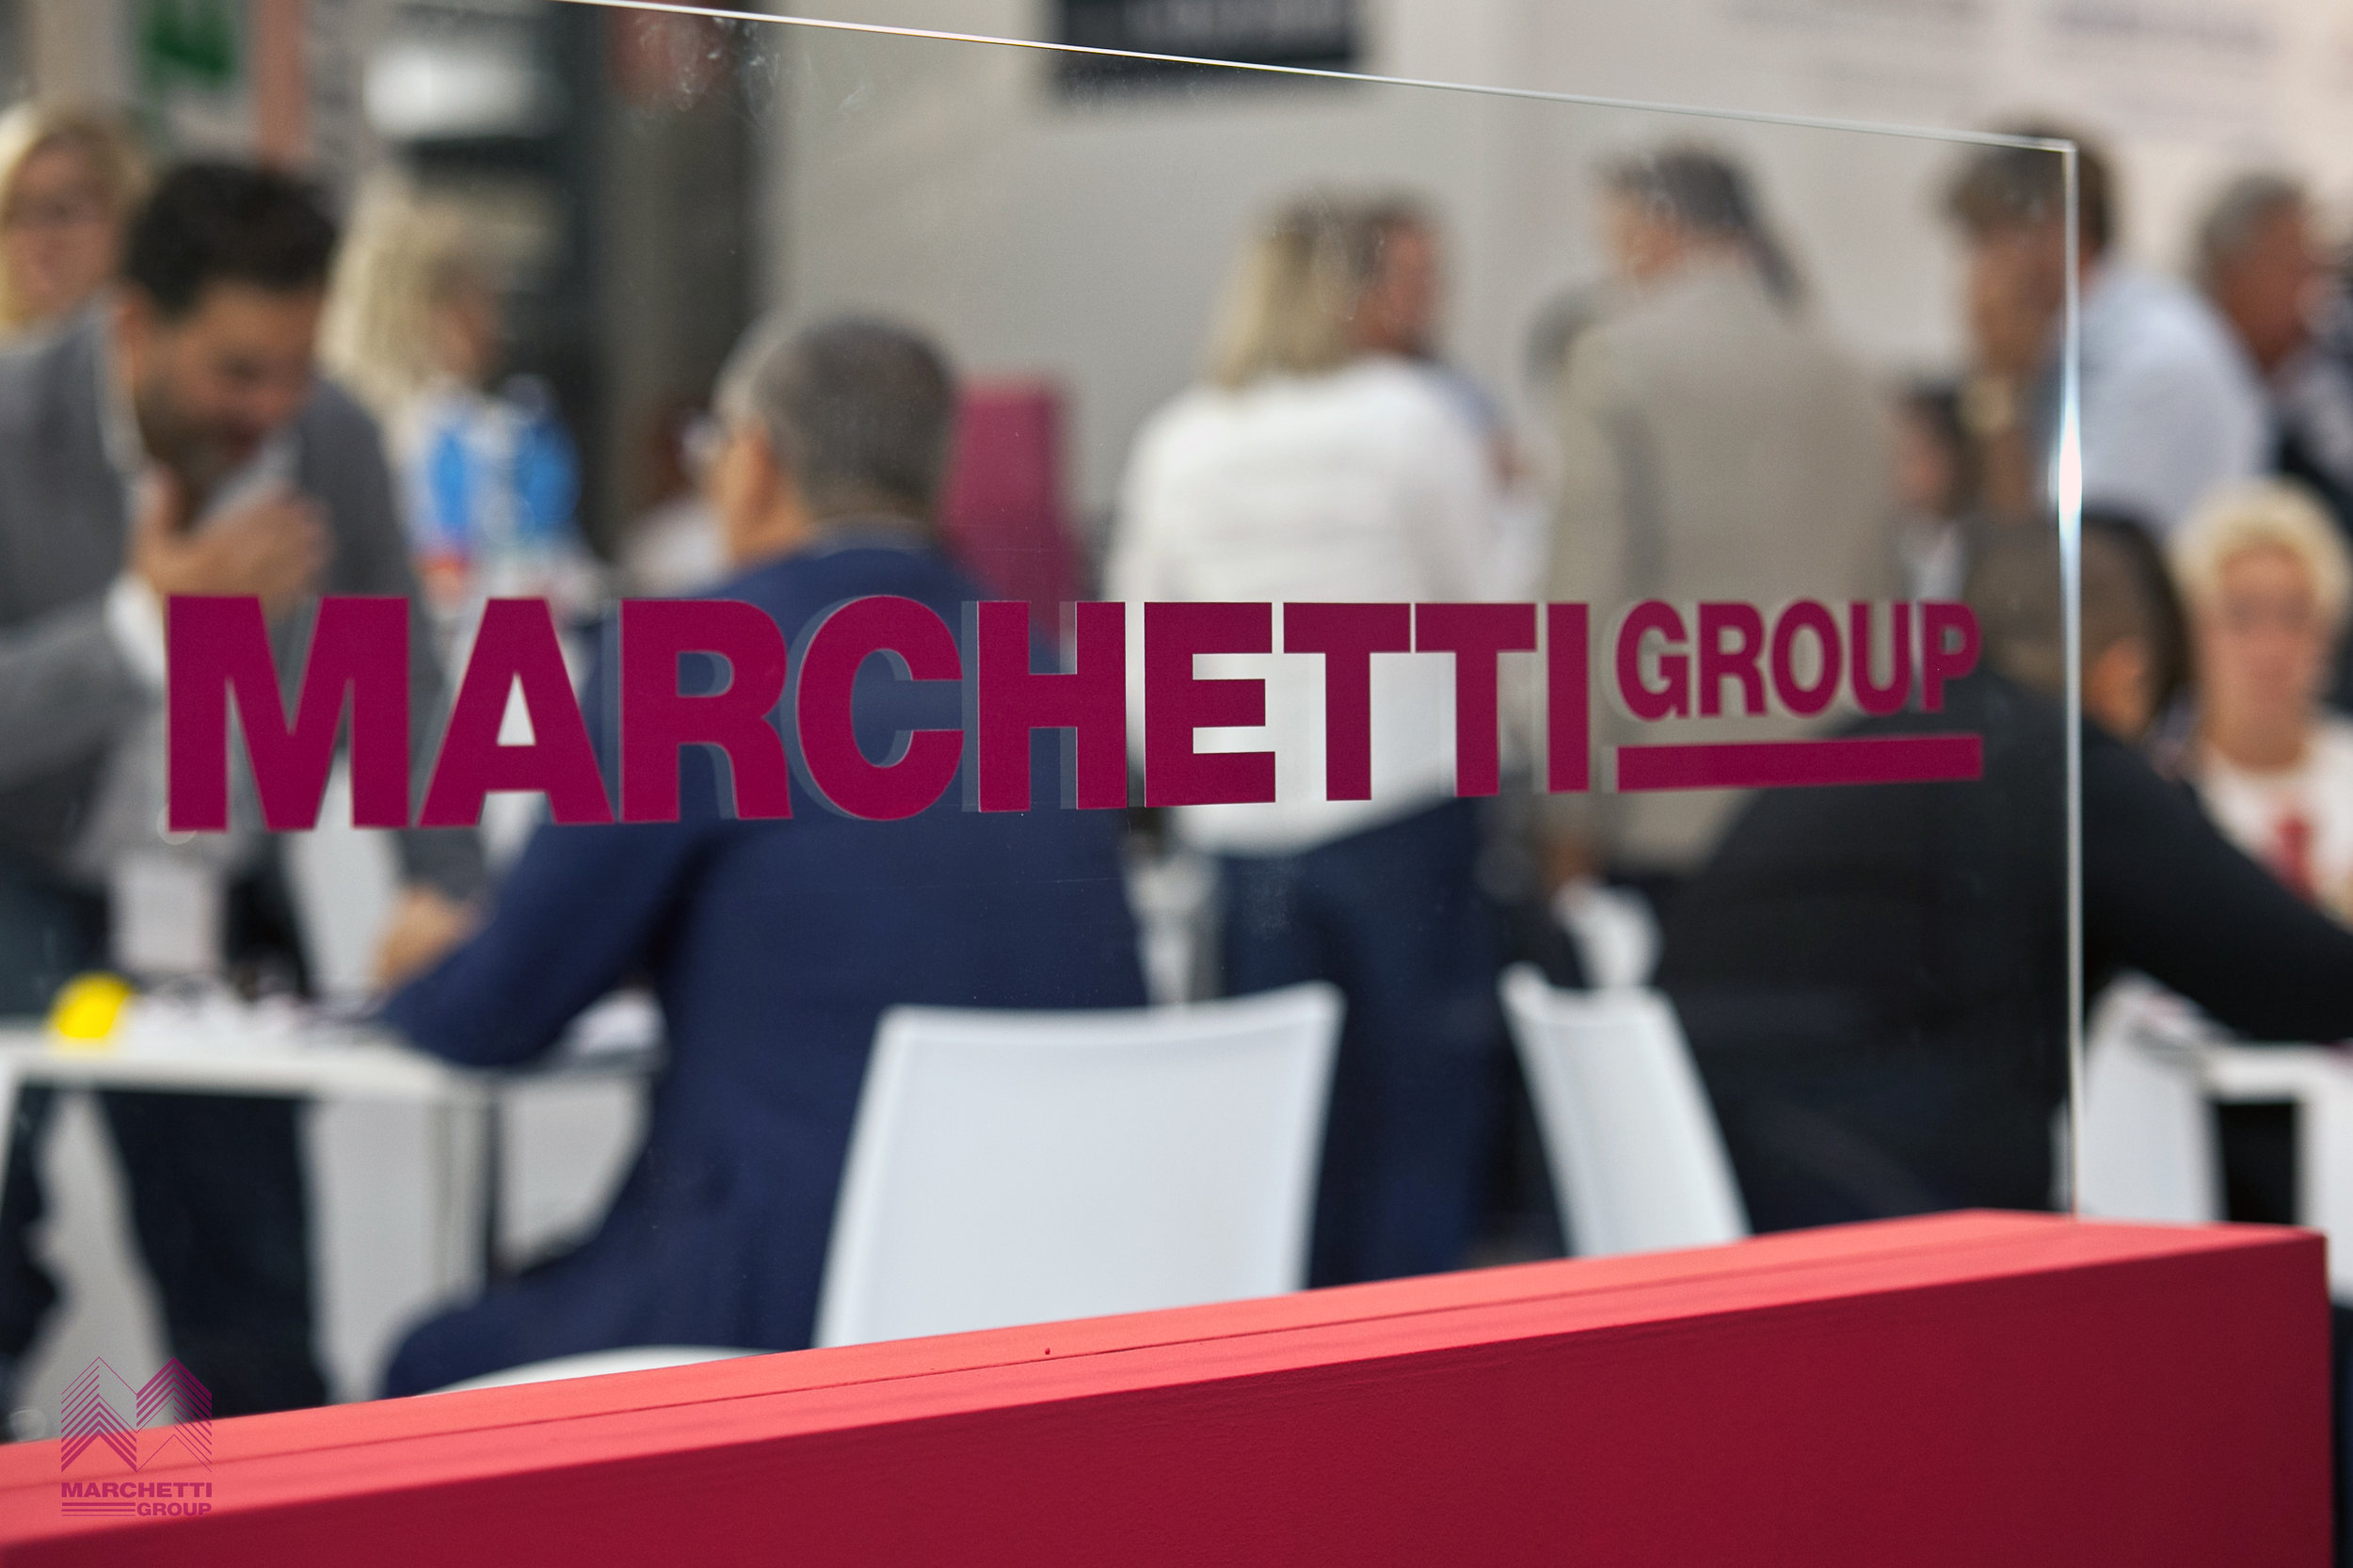 marchetti group glass.jpg